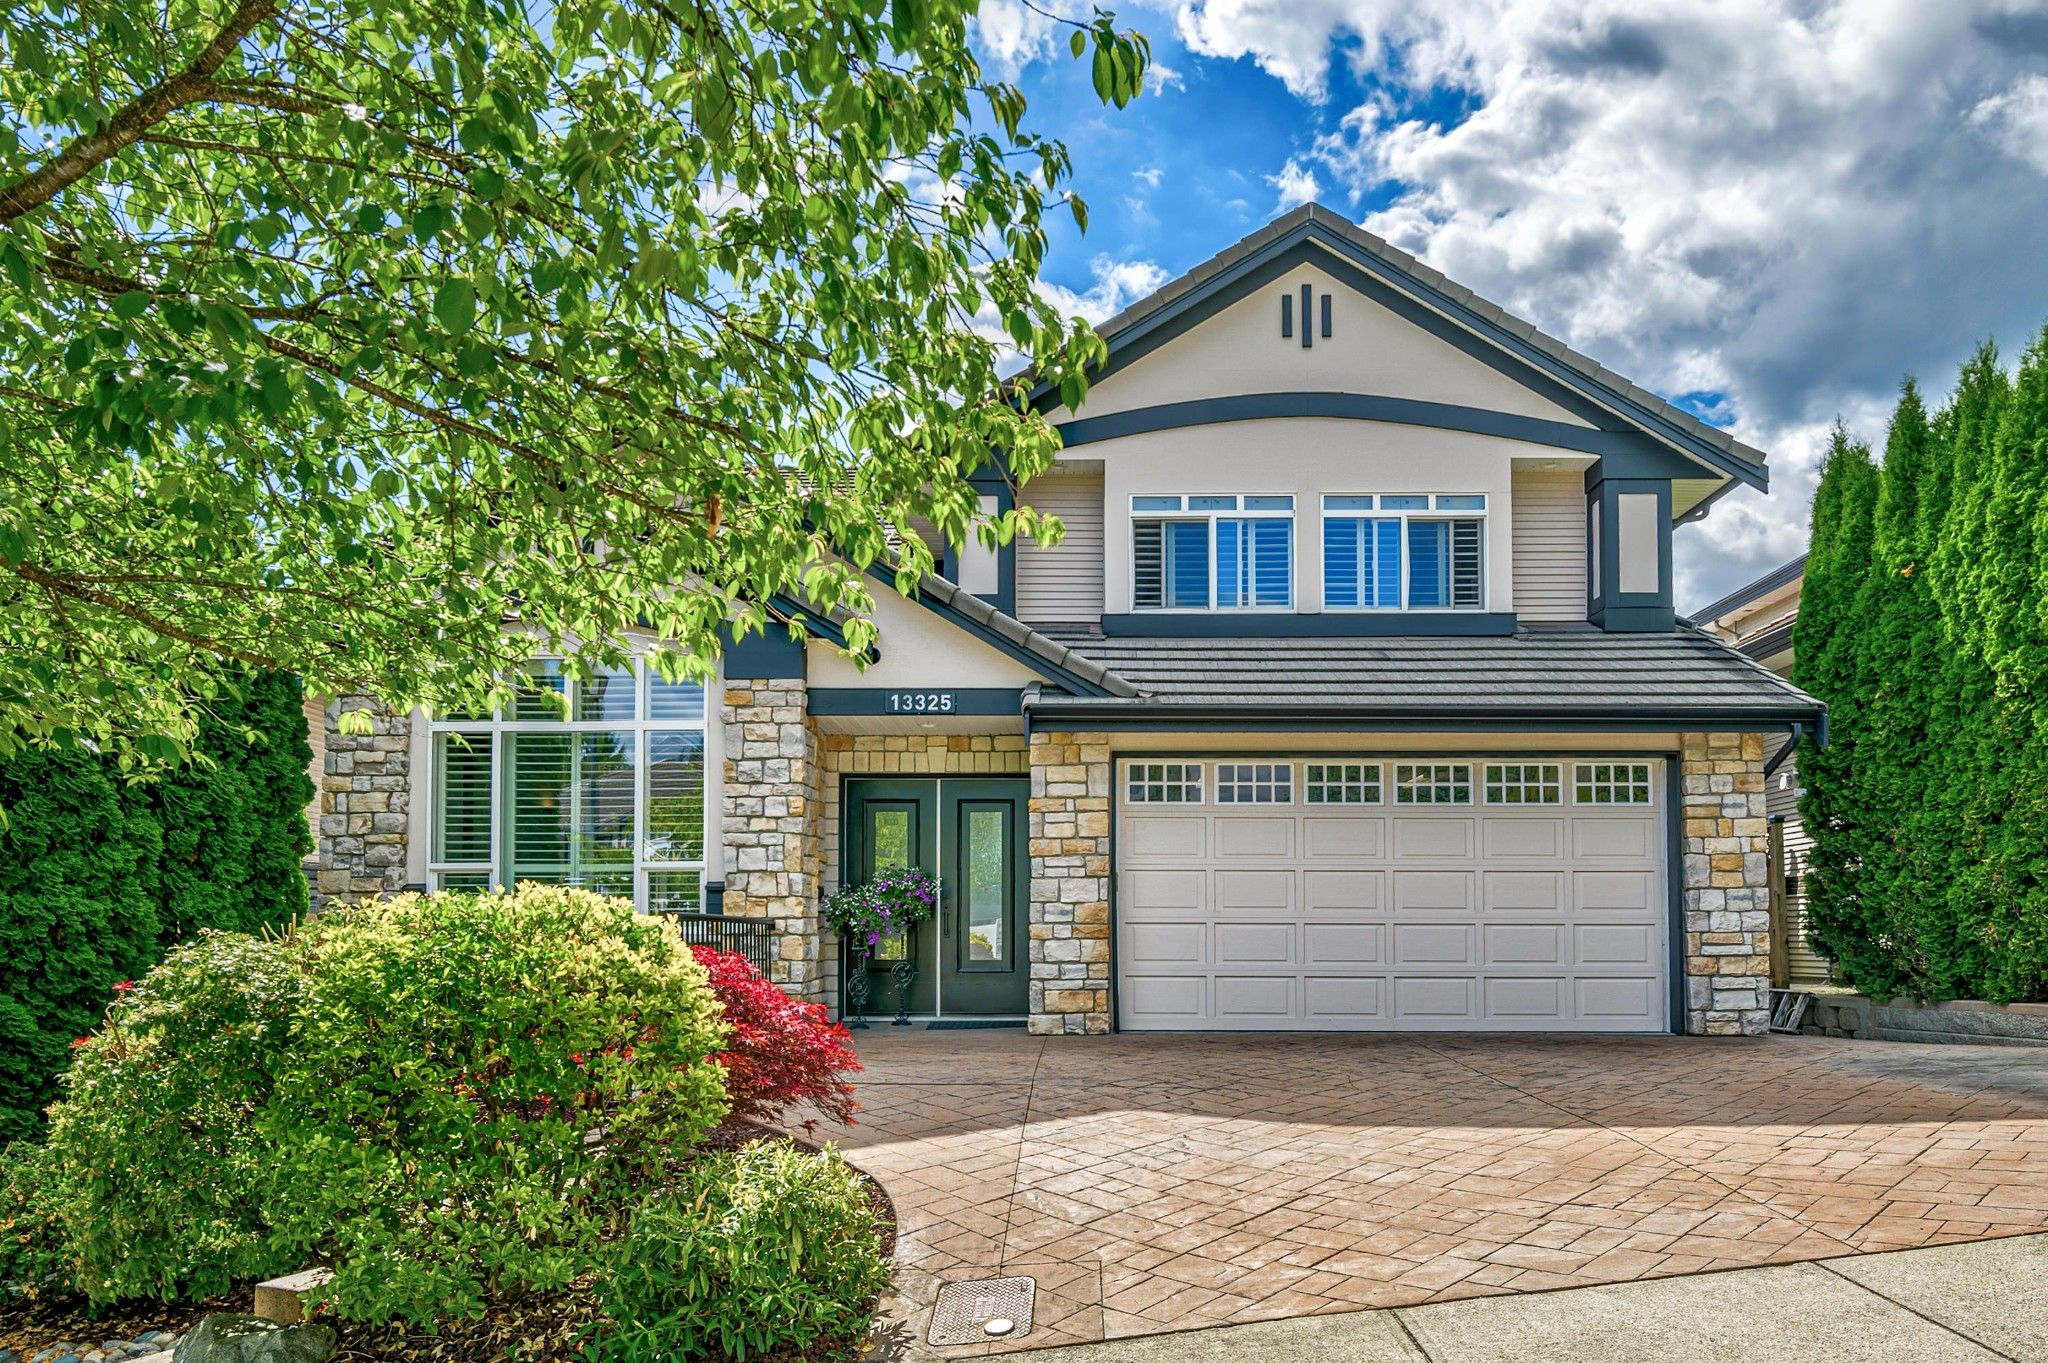 Main Photo: 13325 237A Street in Maple Ridge: Silver Valley House for sale : MLS®# R2590731